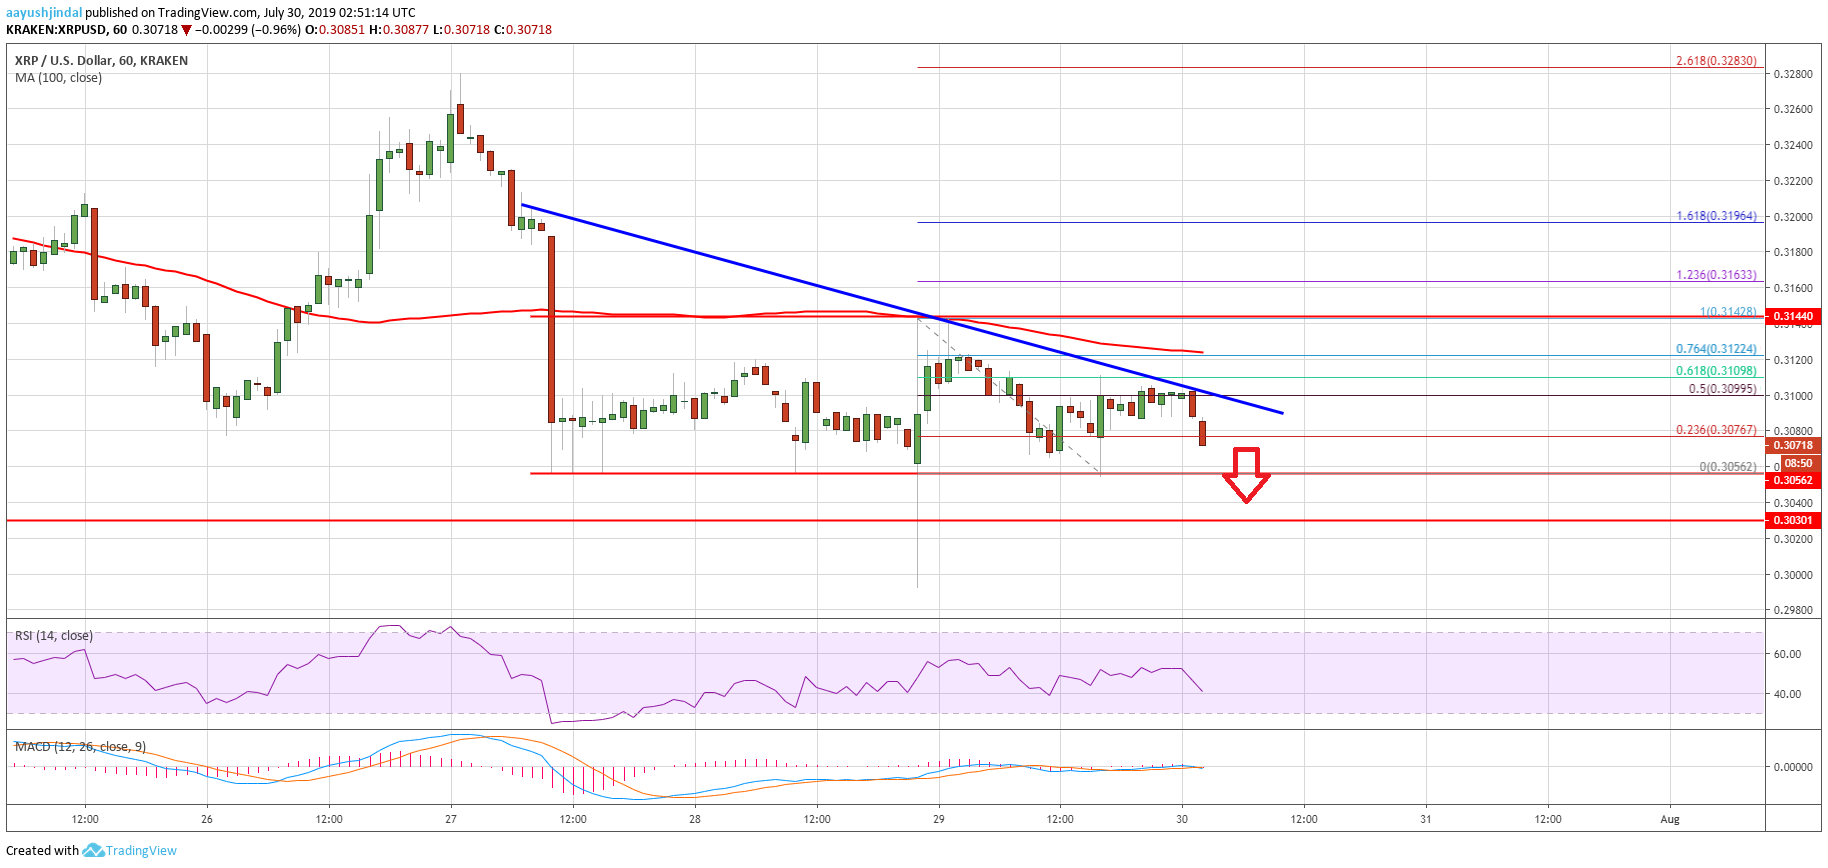 Ripple Price (XRP) Trend Near-Term Negative, Similar To Bitcoin